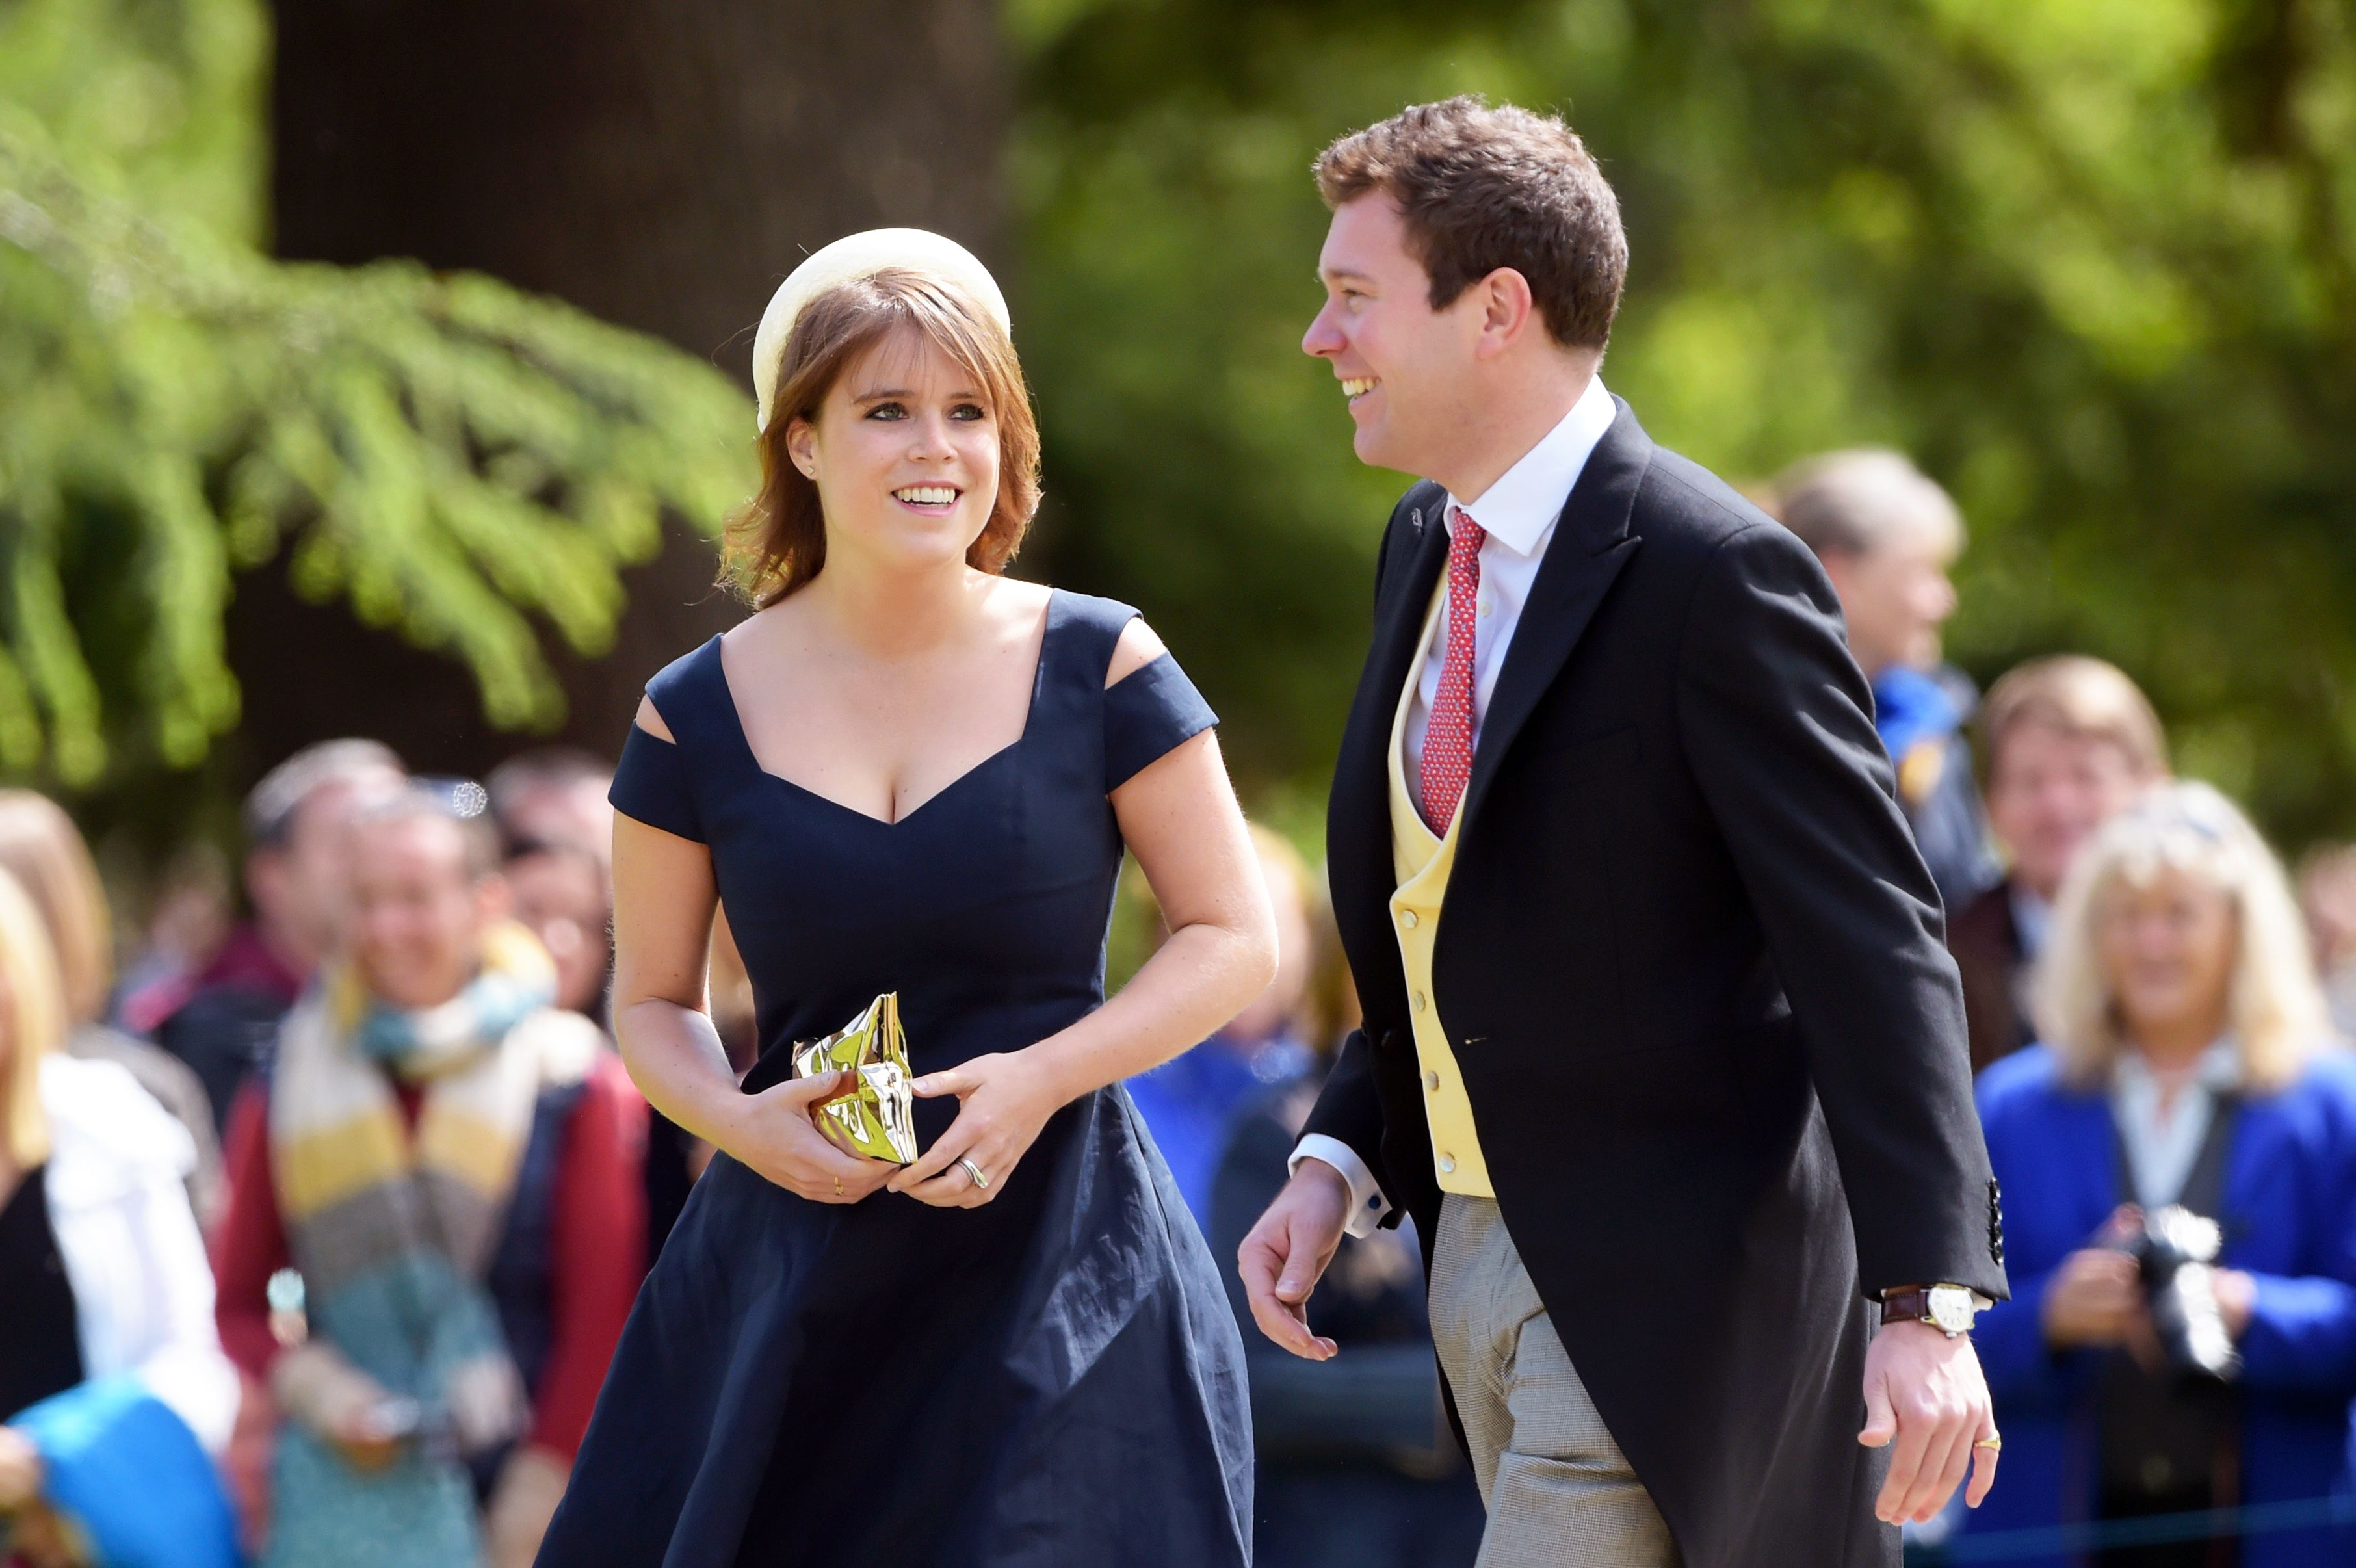 Princess Eugenie's Wedding Invitations Look Completely Different From Harry and Meghan's